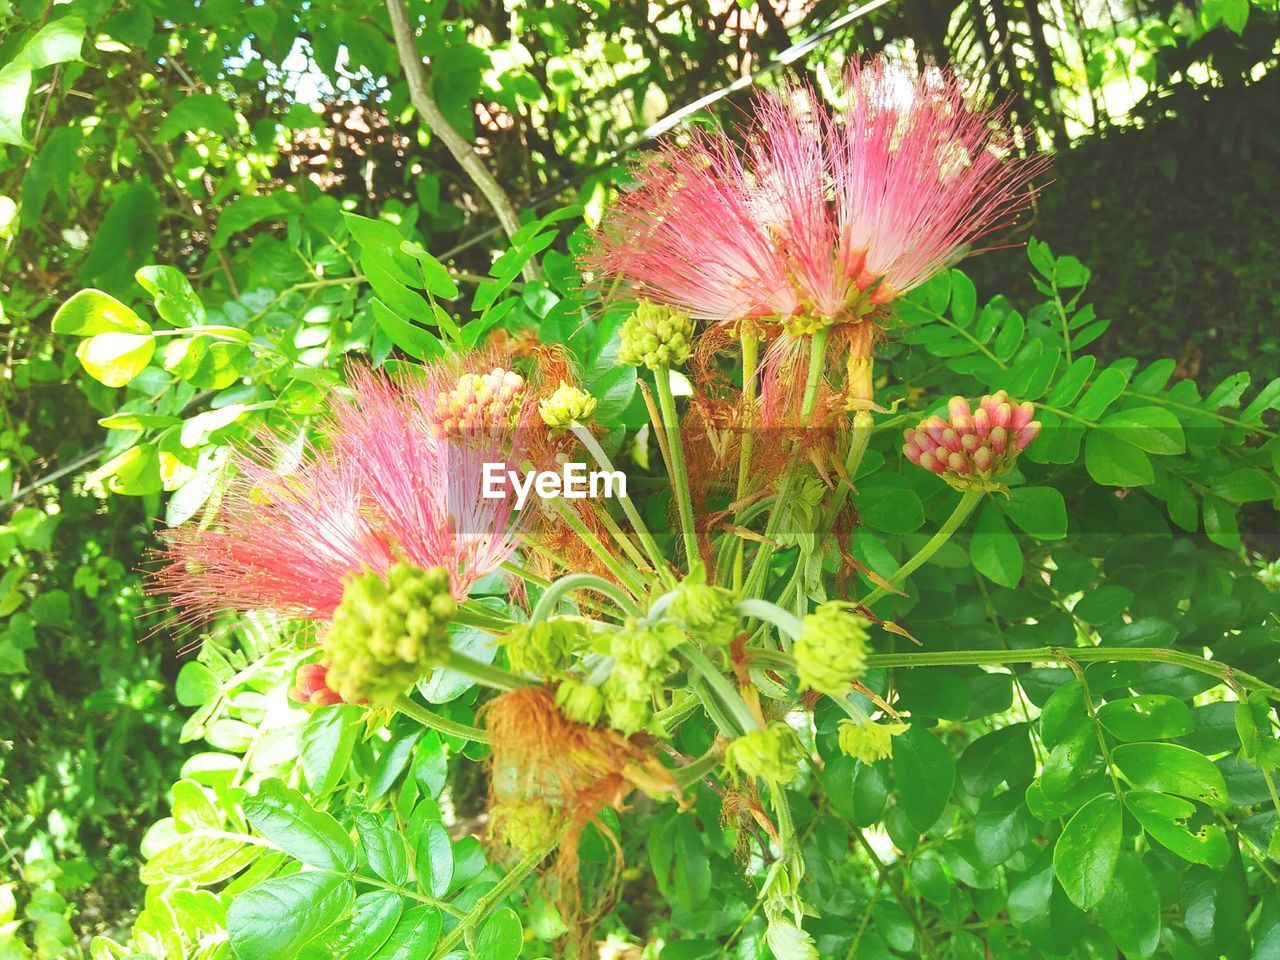 flowering plant, flower, plant, beauty in nature, growth, freshness, fragility, vulnerability, close-up, flower head, inflorescence, pink color, petal, nature, no people, green color, day, plant part, leaf, outdoors